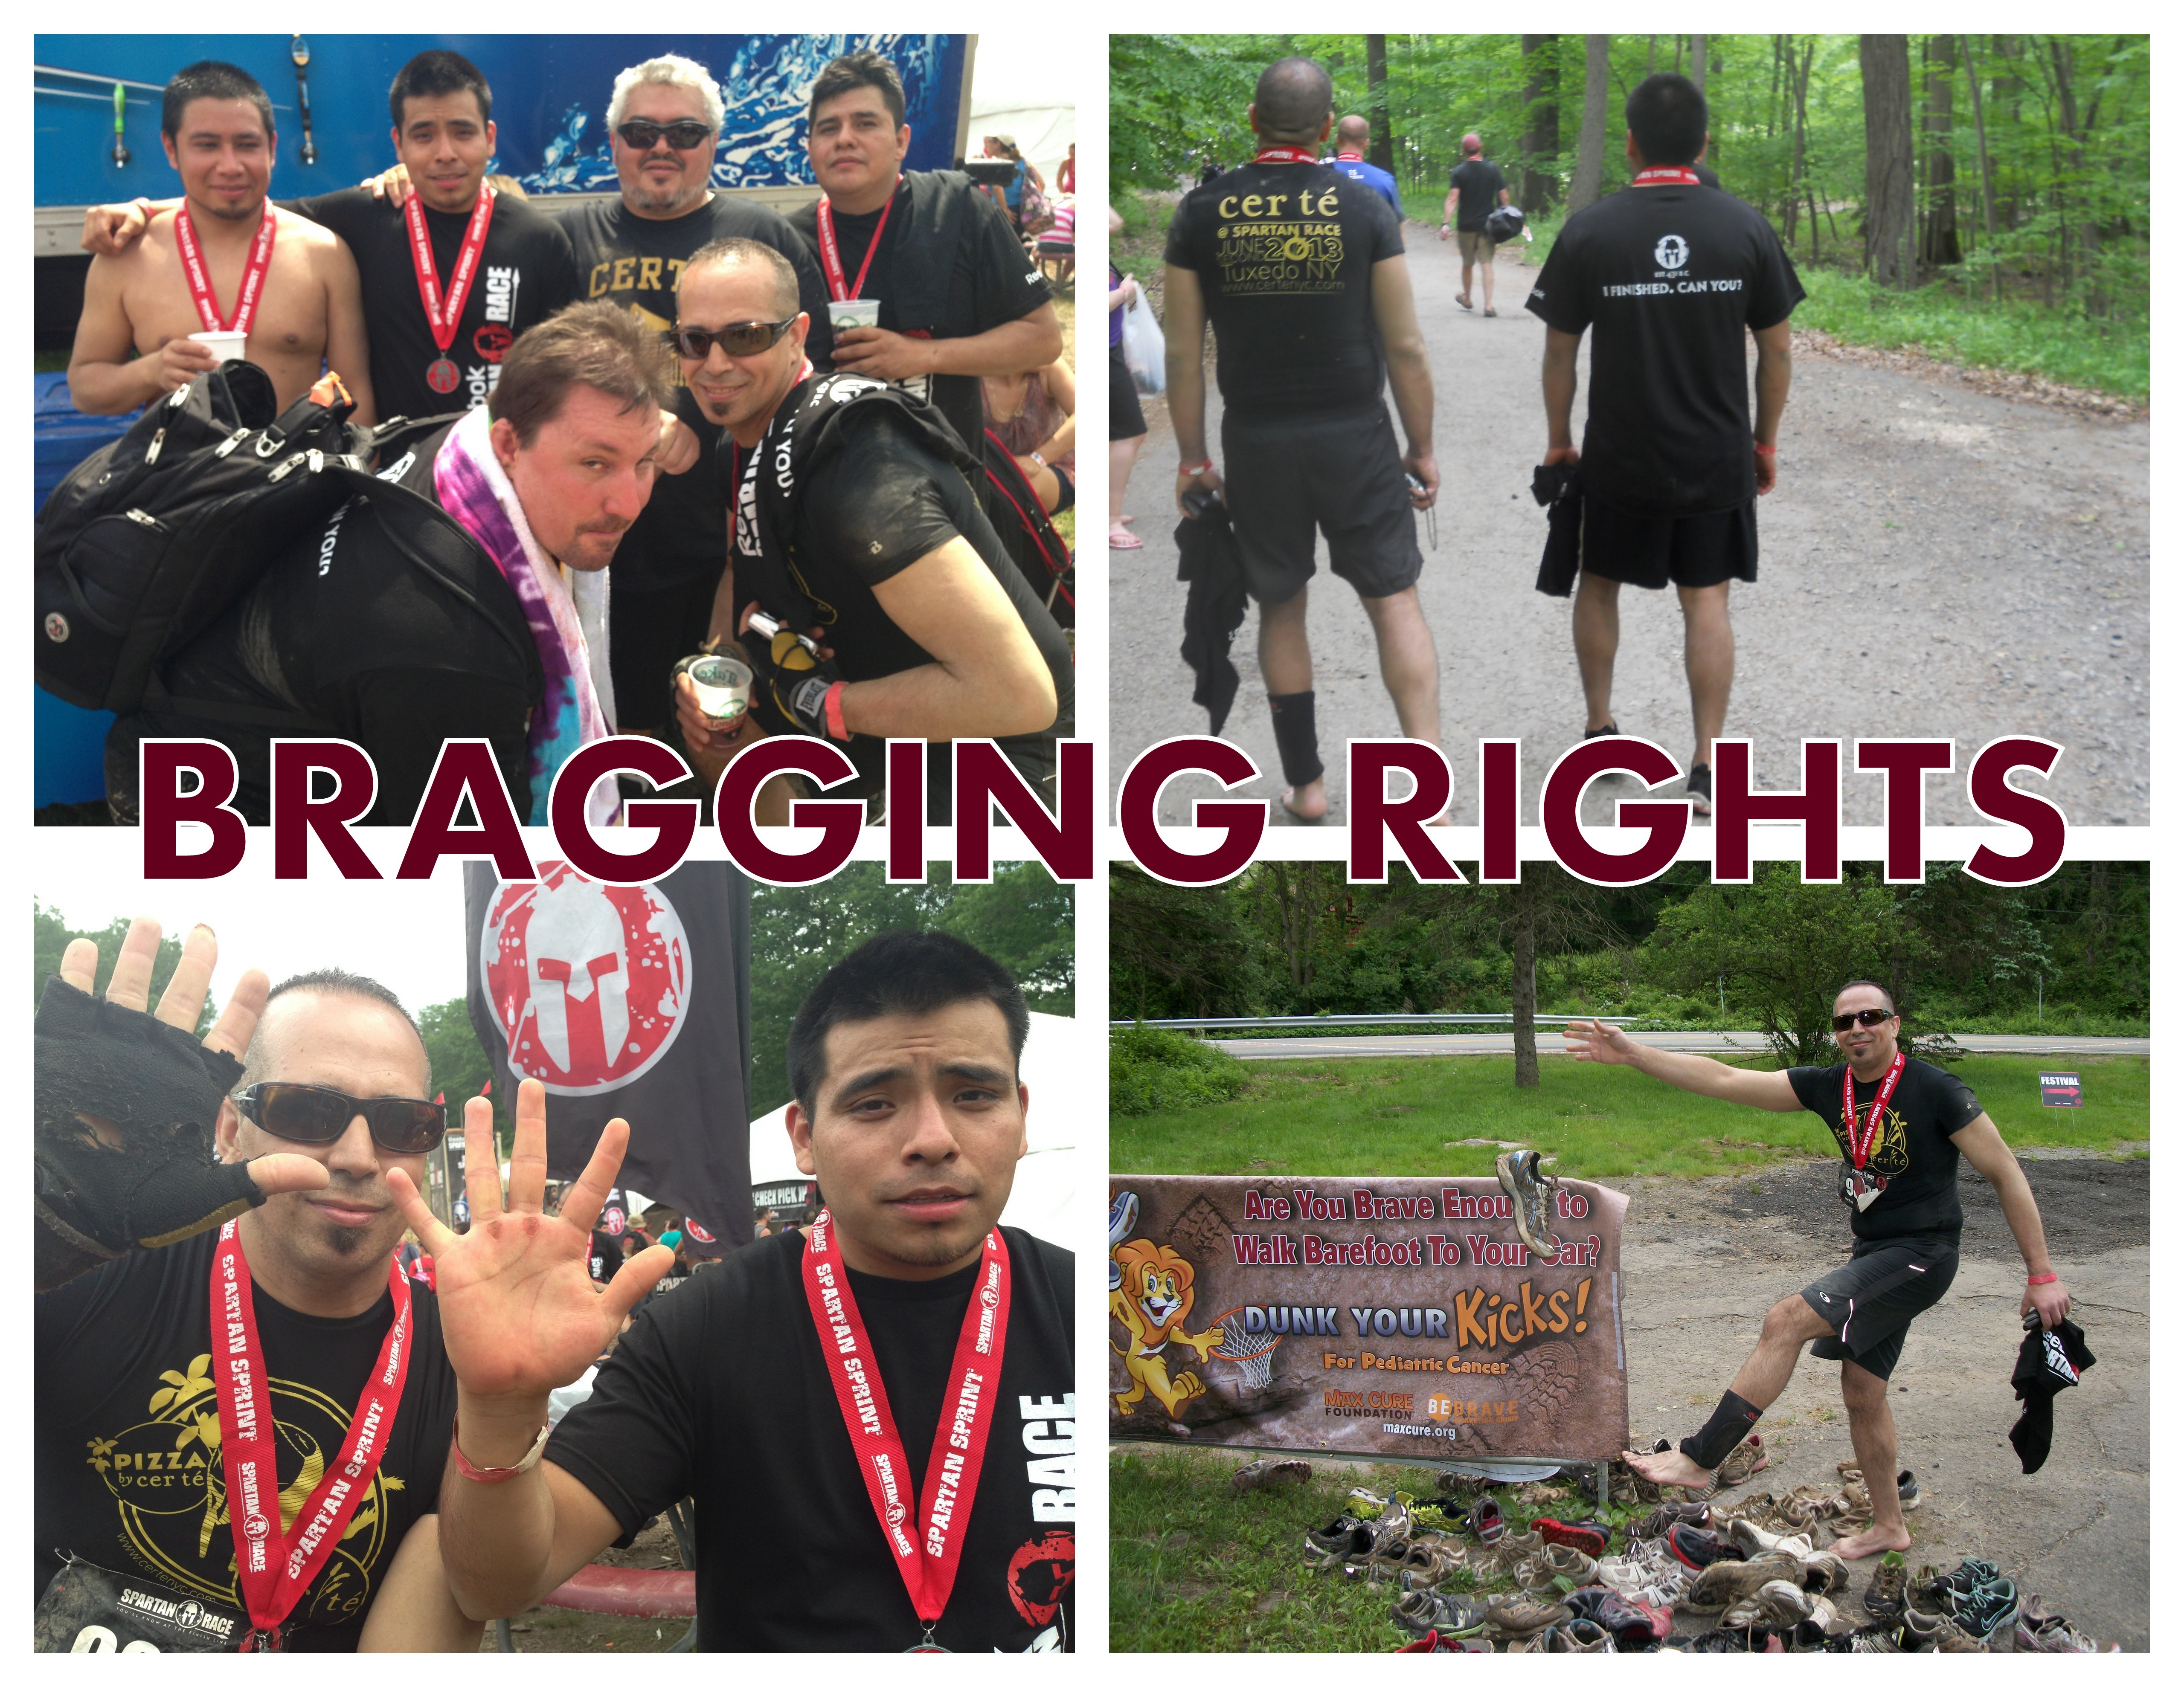 Spartan Race 2013. Collage. BRAGGING RIGHTS